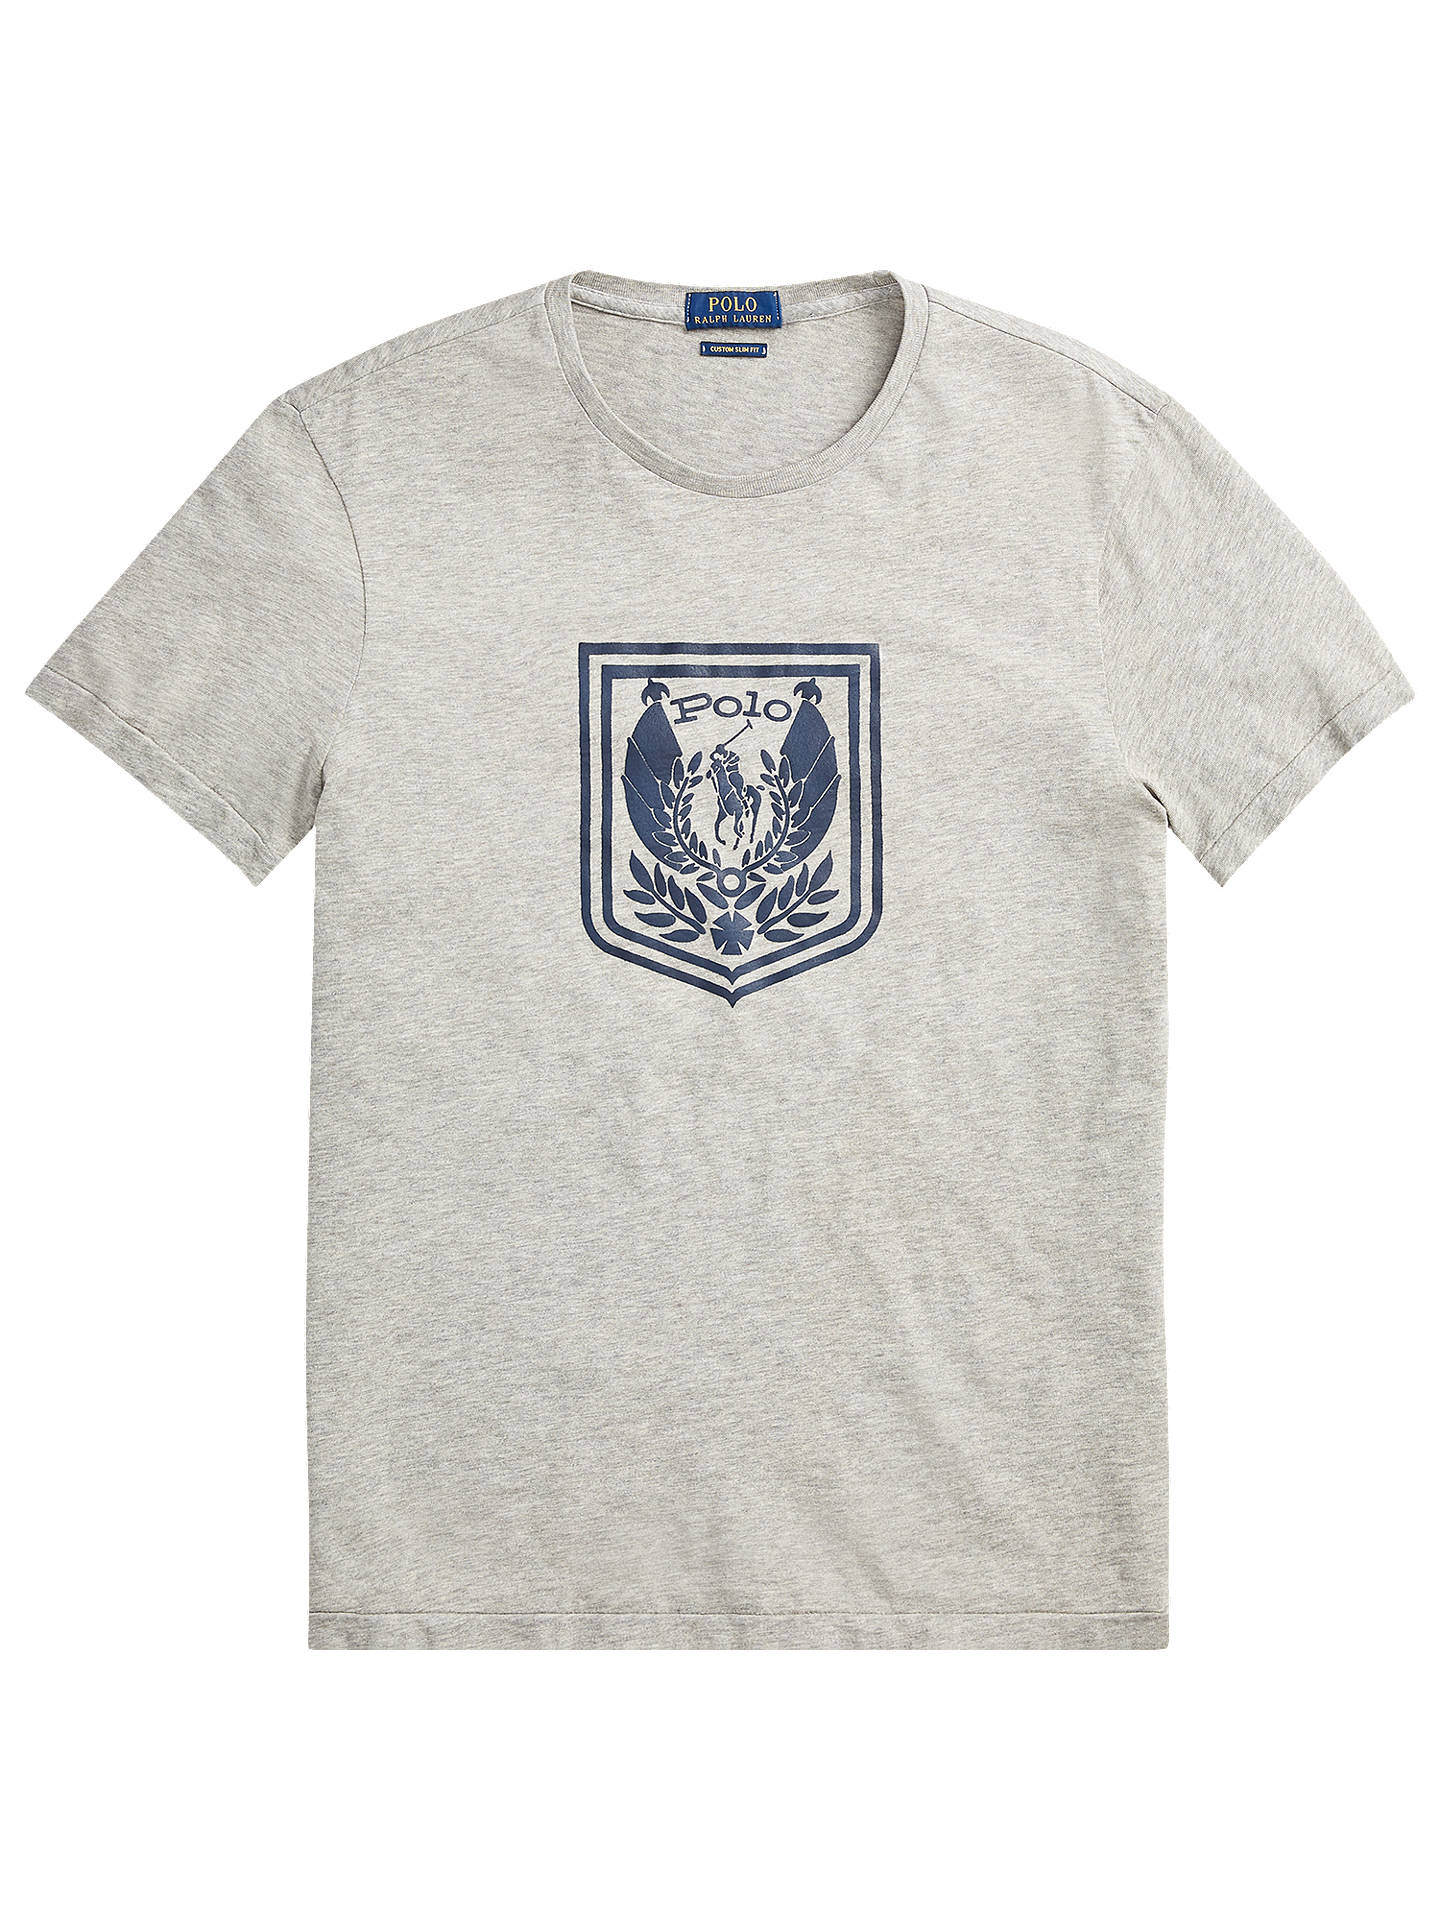 BuyPolo Ralph Lauren Short Sleeve Logo T-Shirt, Andover Heather, S Online at johnlewis.com